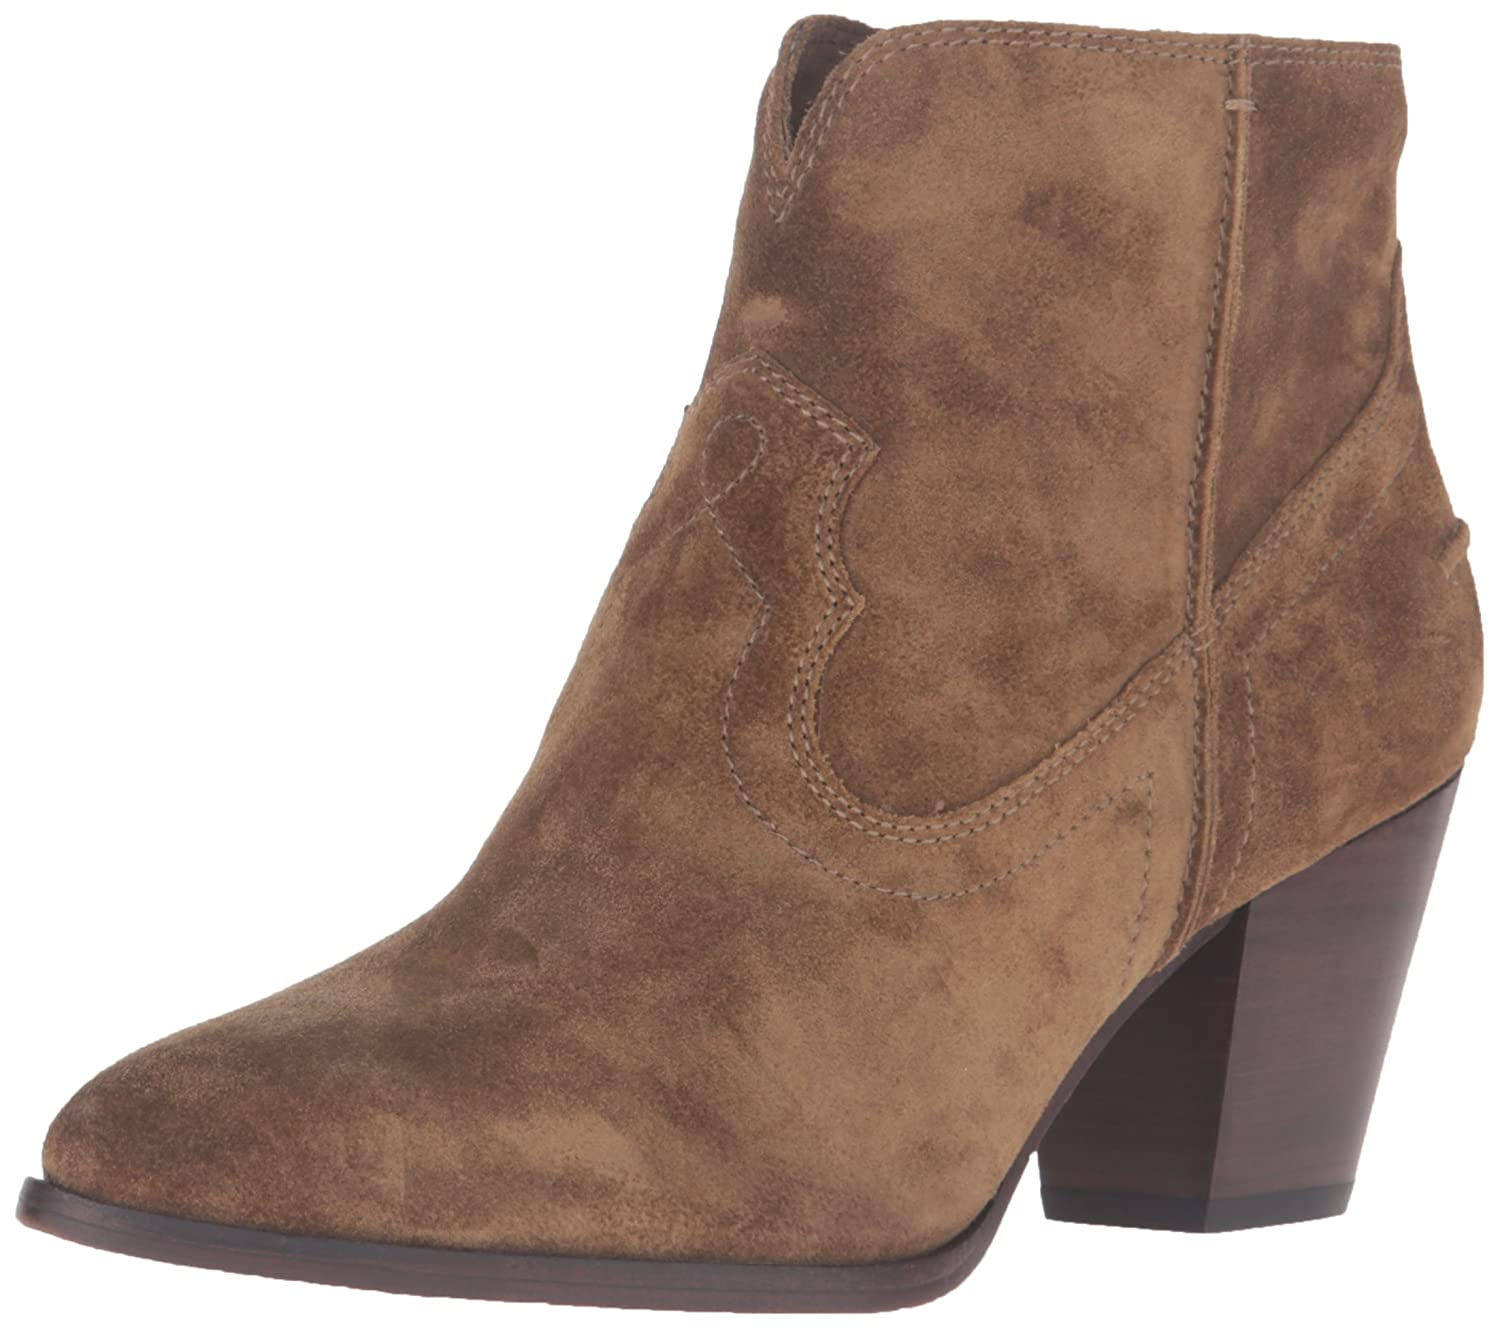 FRYE Women's Renee Seam Short Boot B01A9YI9MW 6.5 B(M) US|Cashew-72063